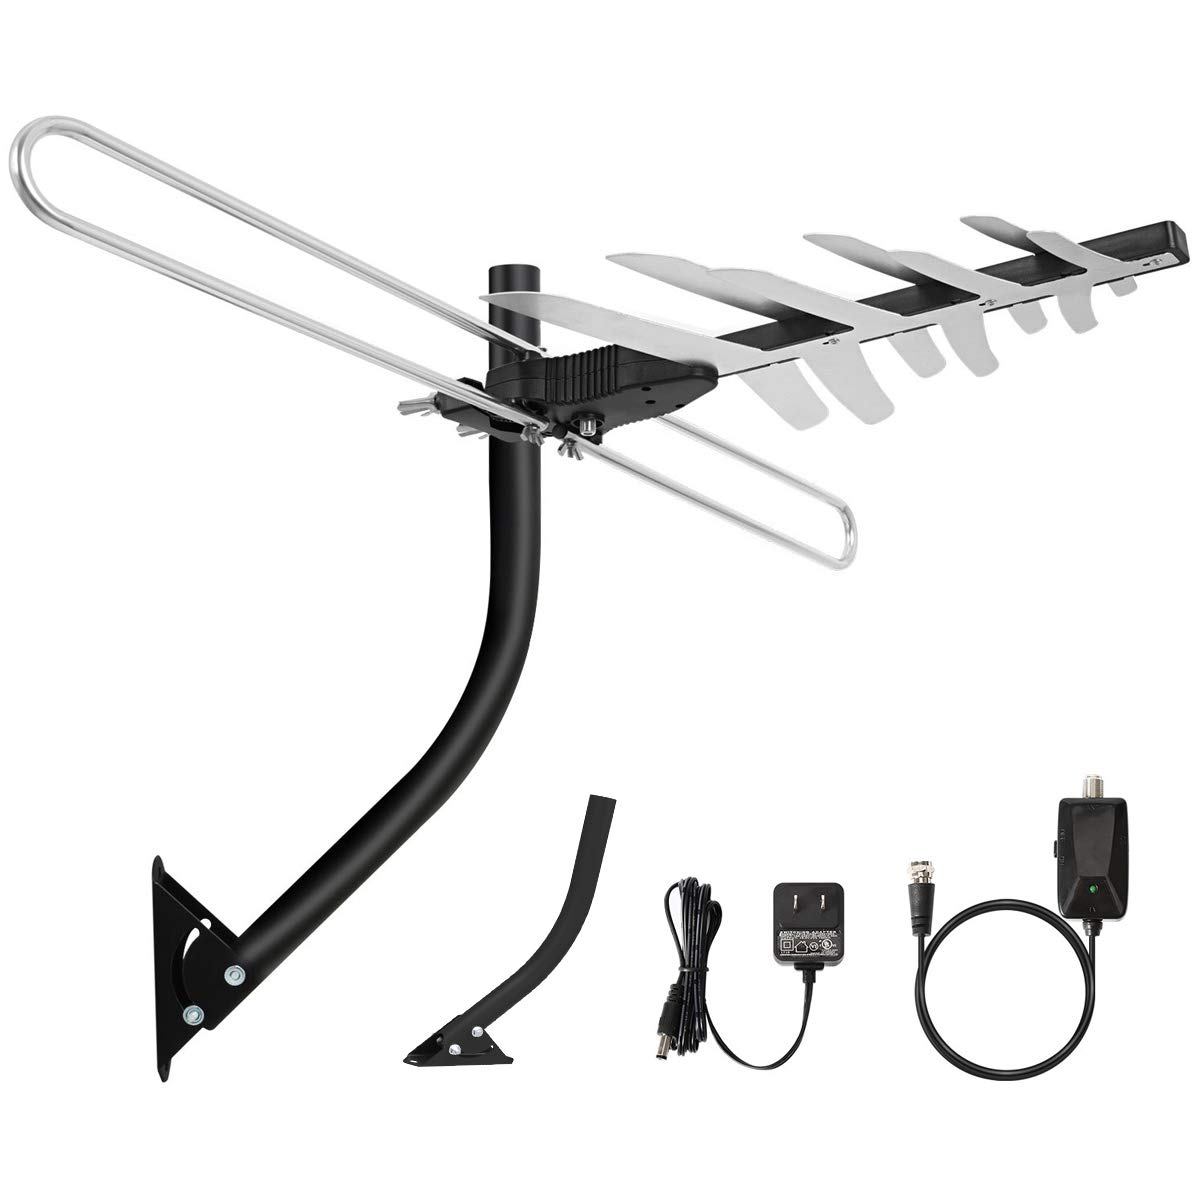 1byone Outdoor Antenna